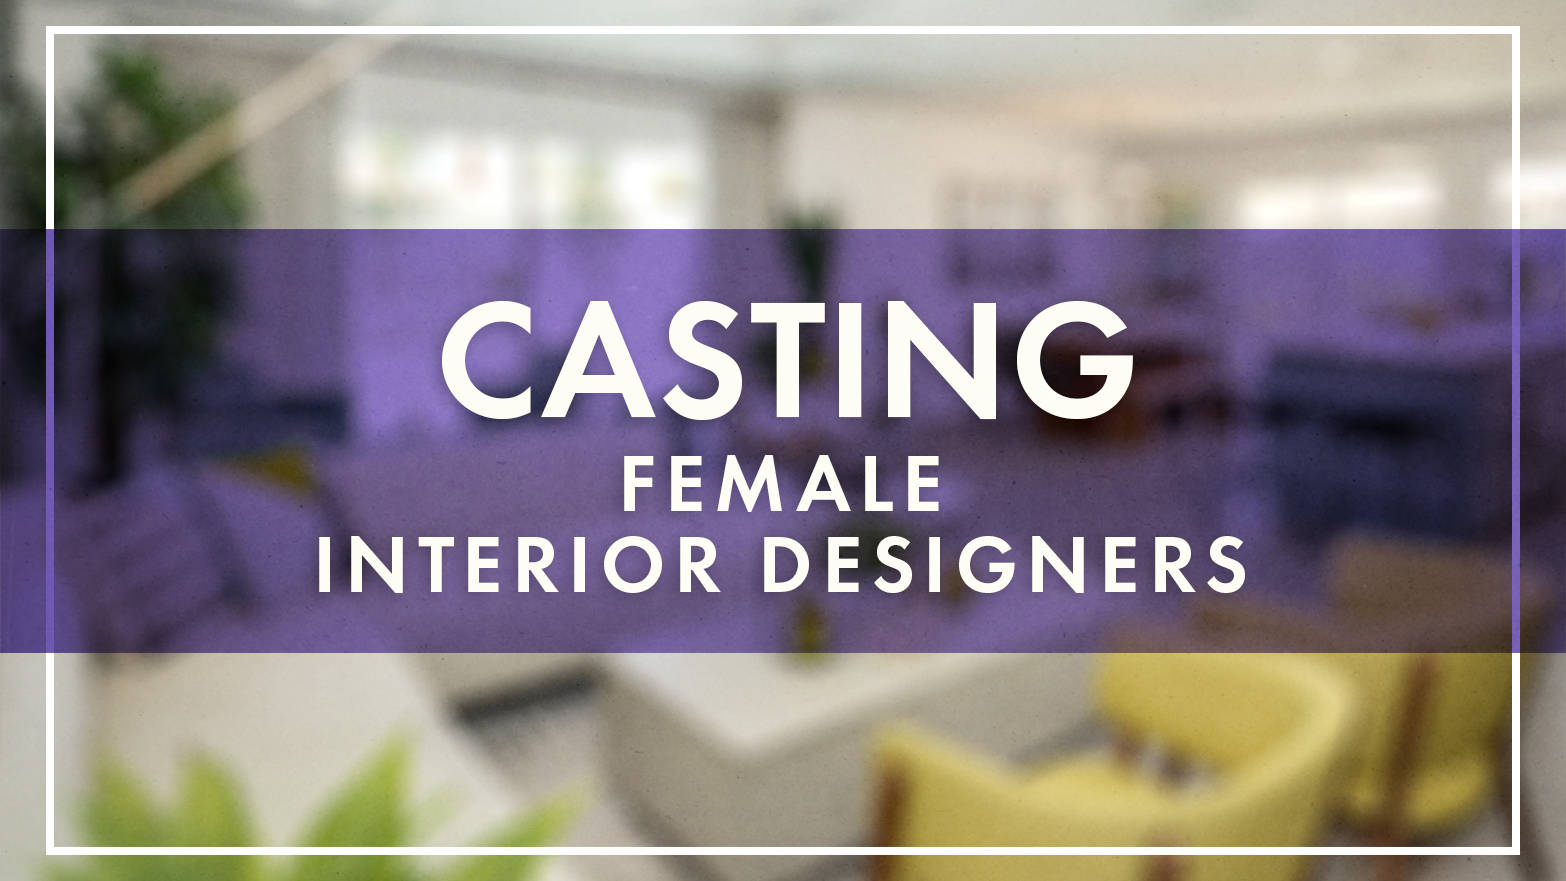 Casting for Female Interior Designers